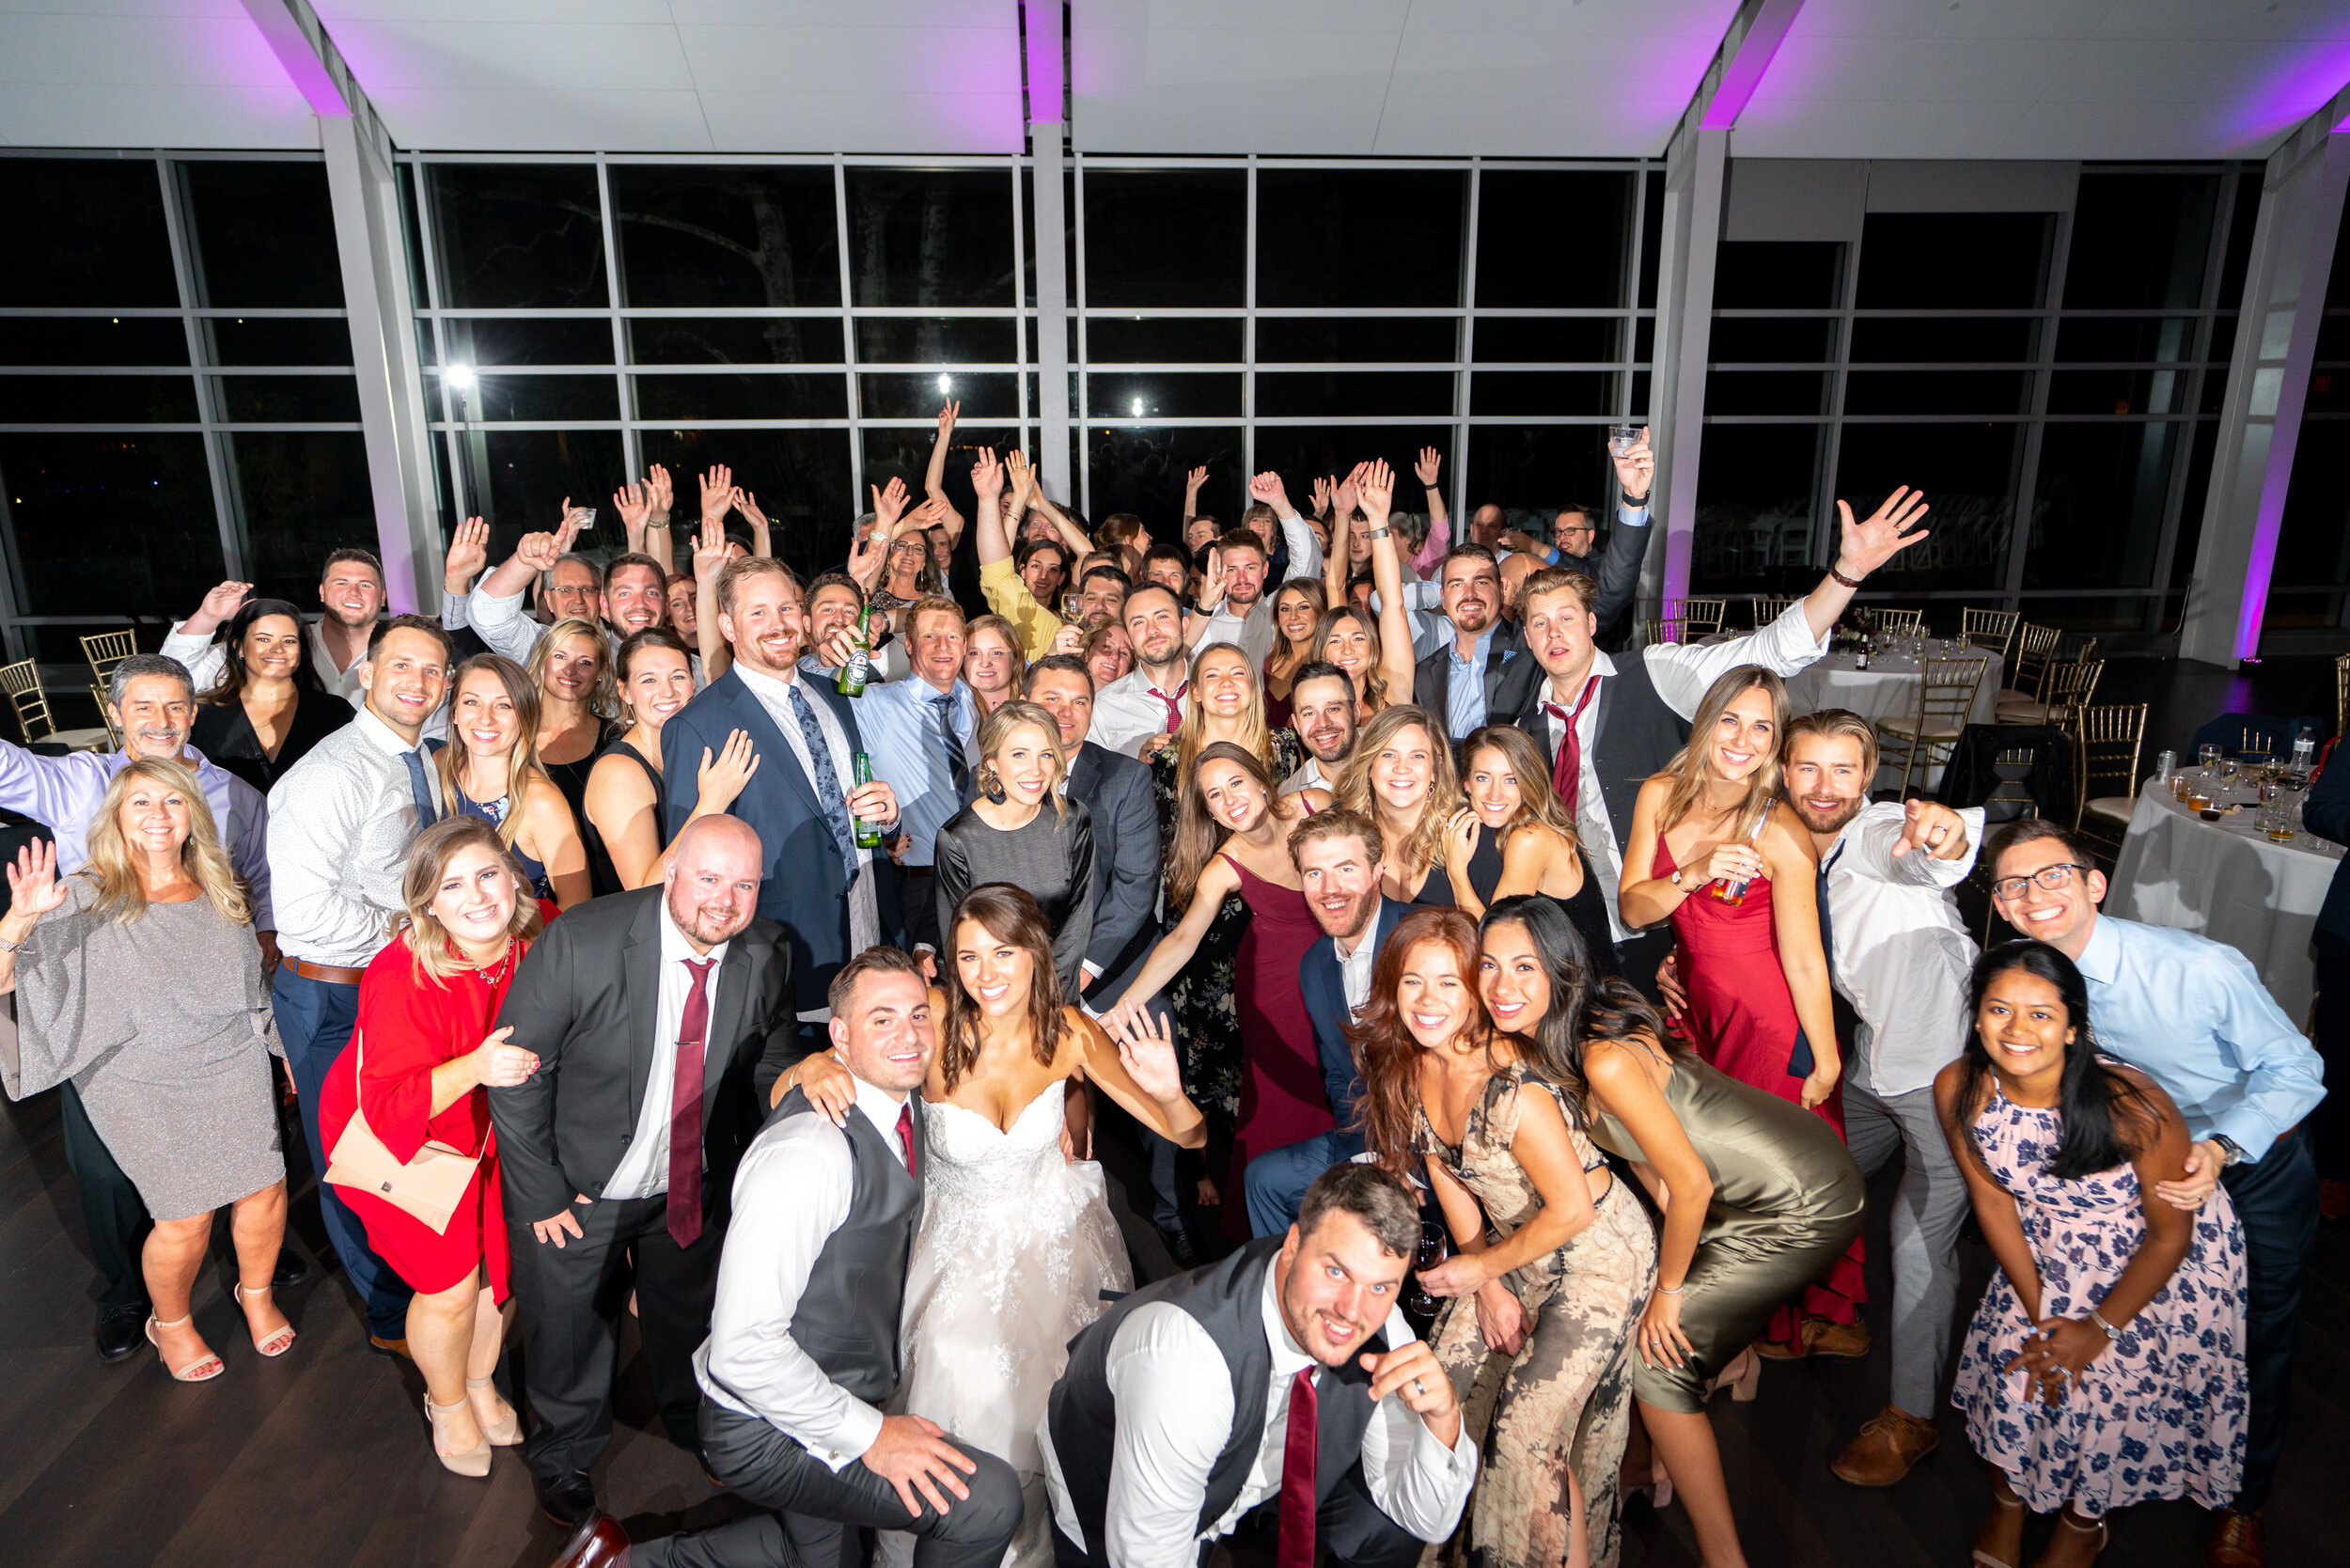 All of the guests have a group photo at the end of the night on the dance floor